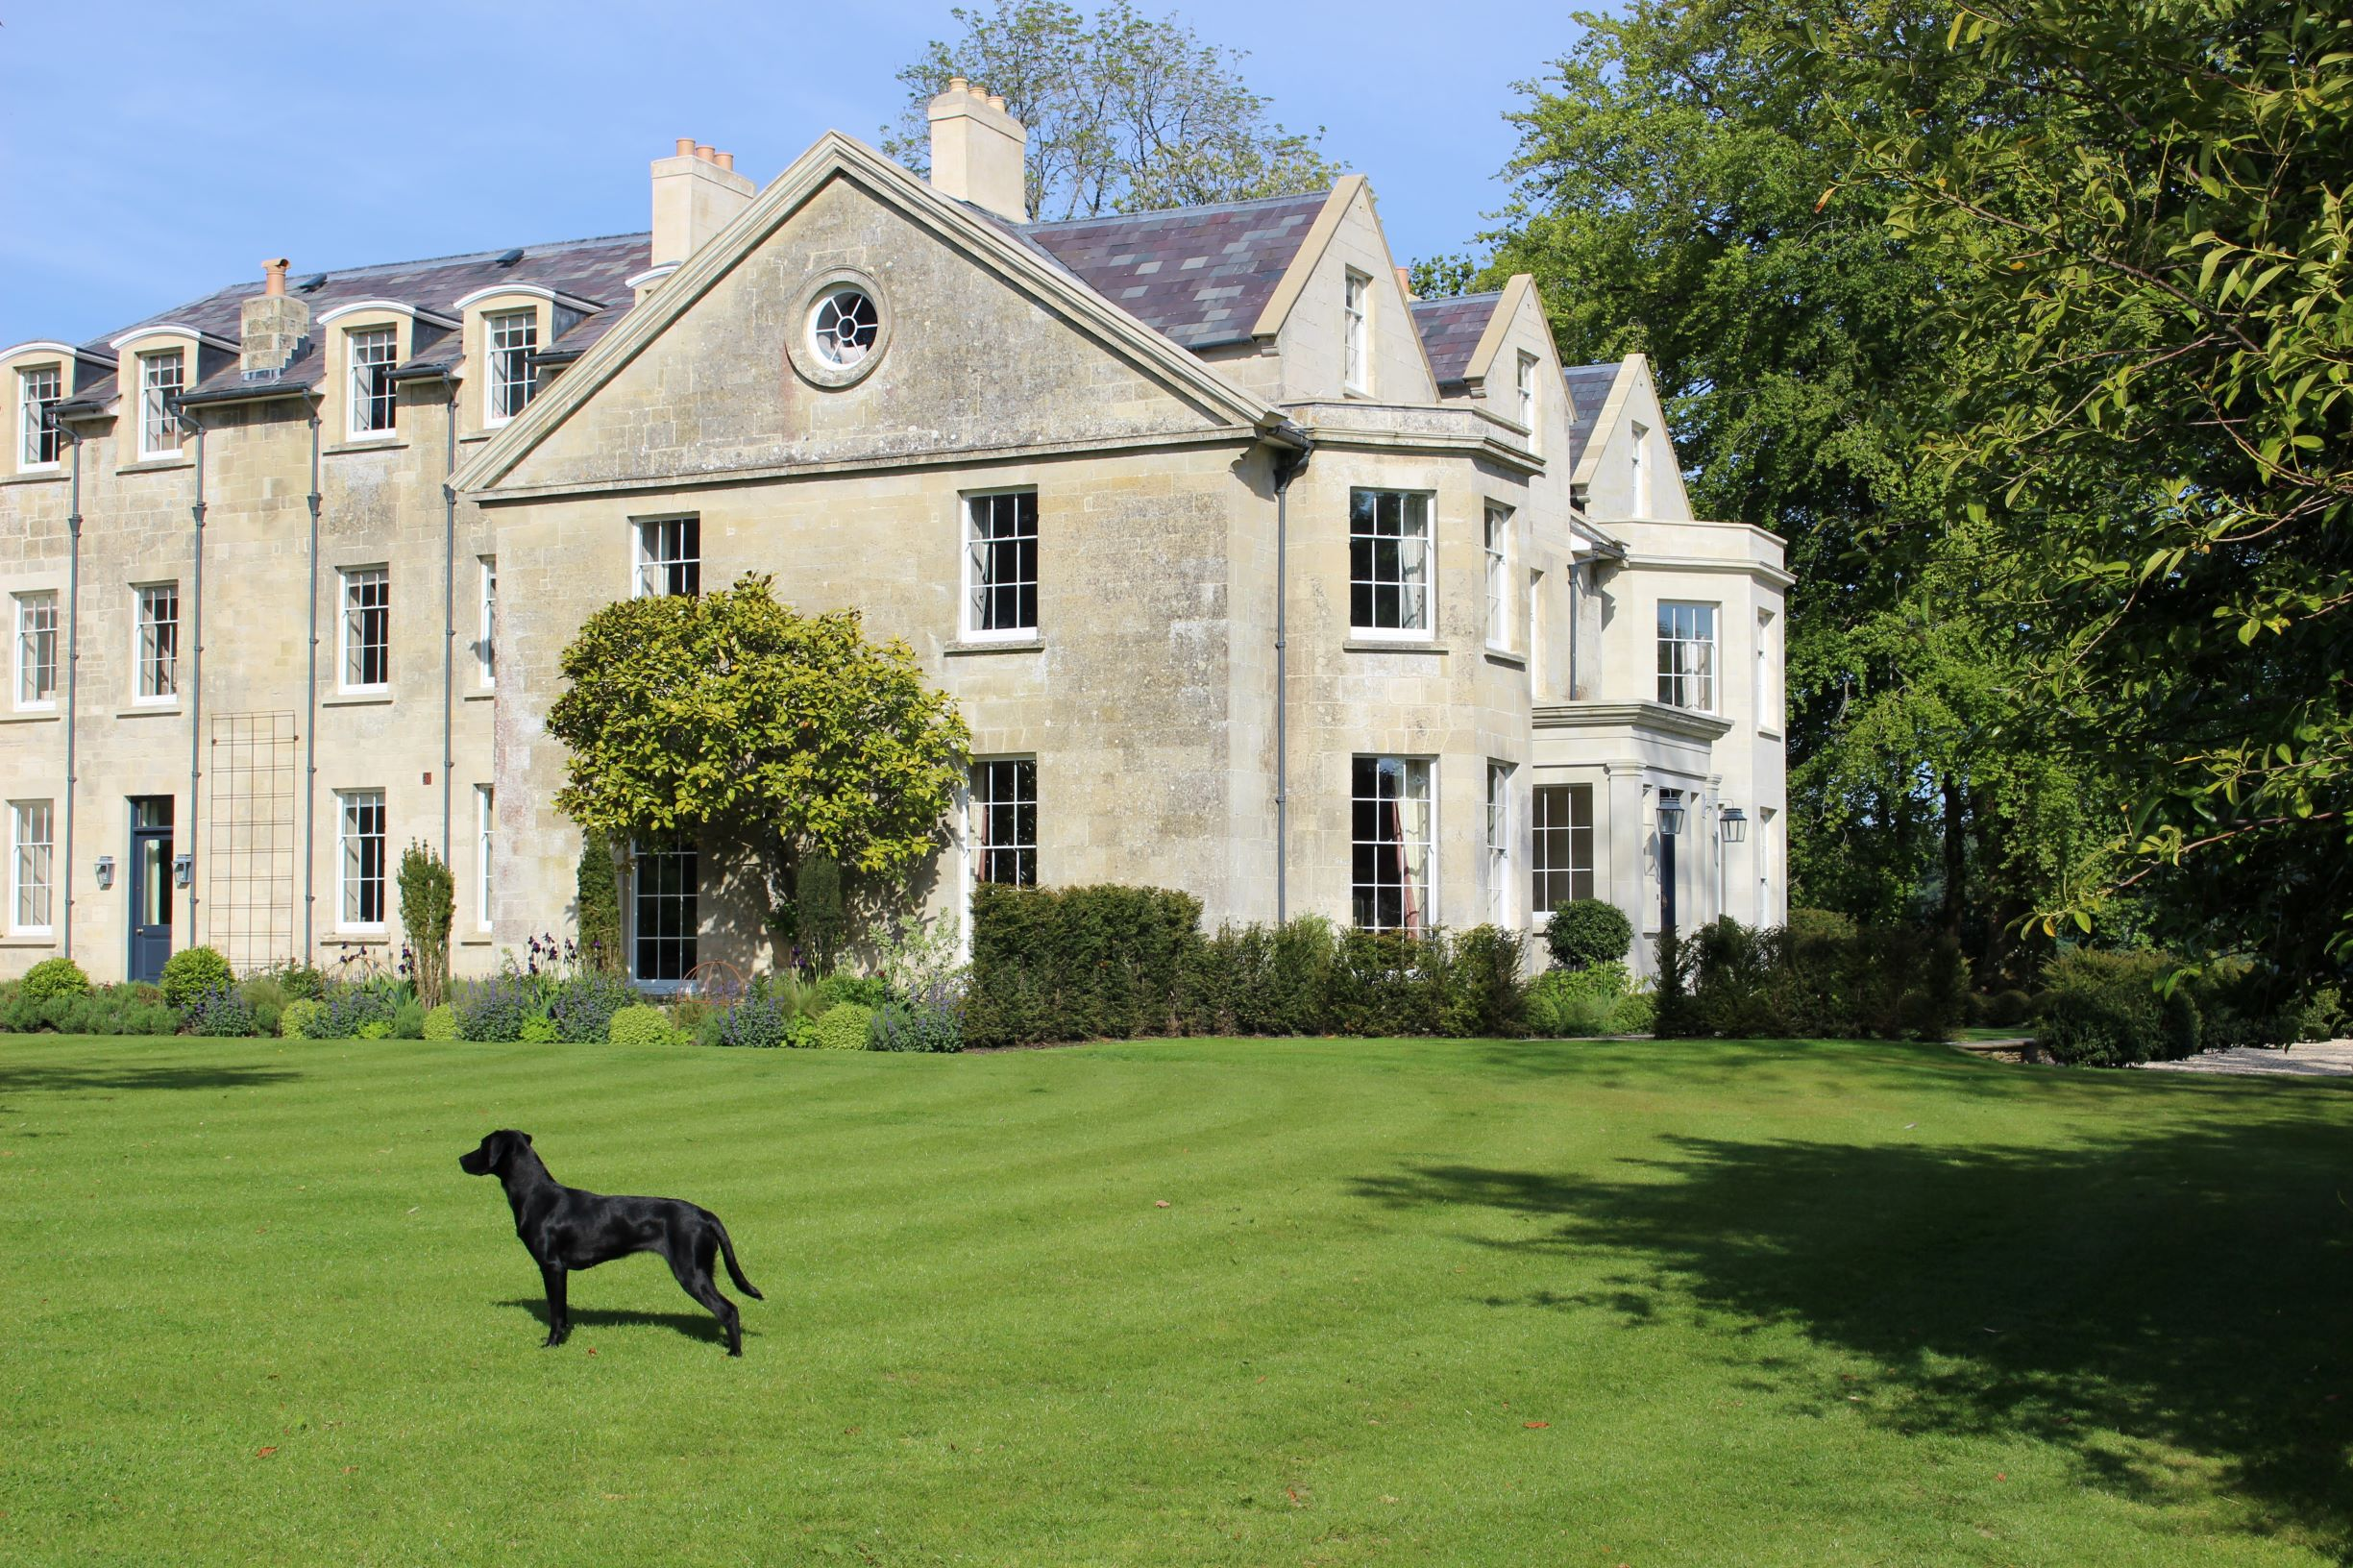 The Old Rectory by Wiltshire Architecture Firm Richmond Bell Architects Salisbury